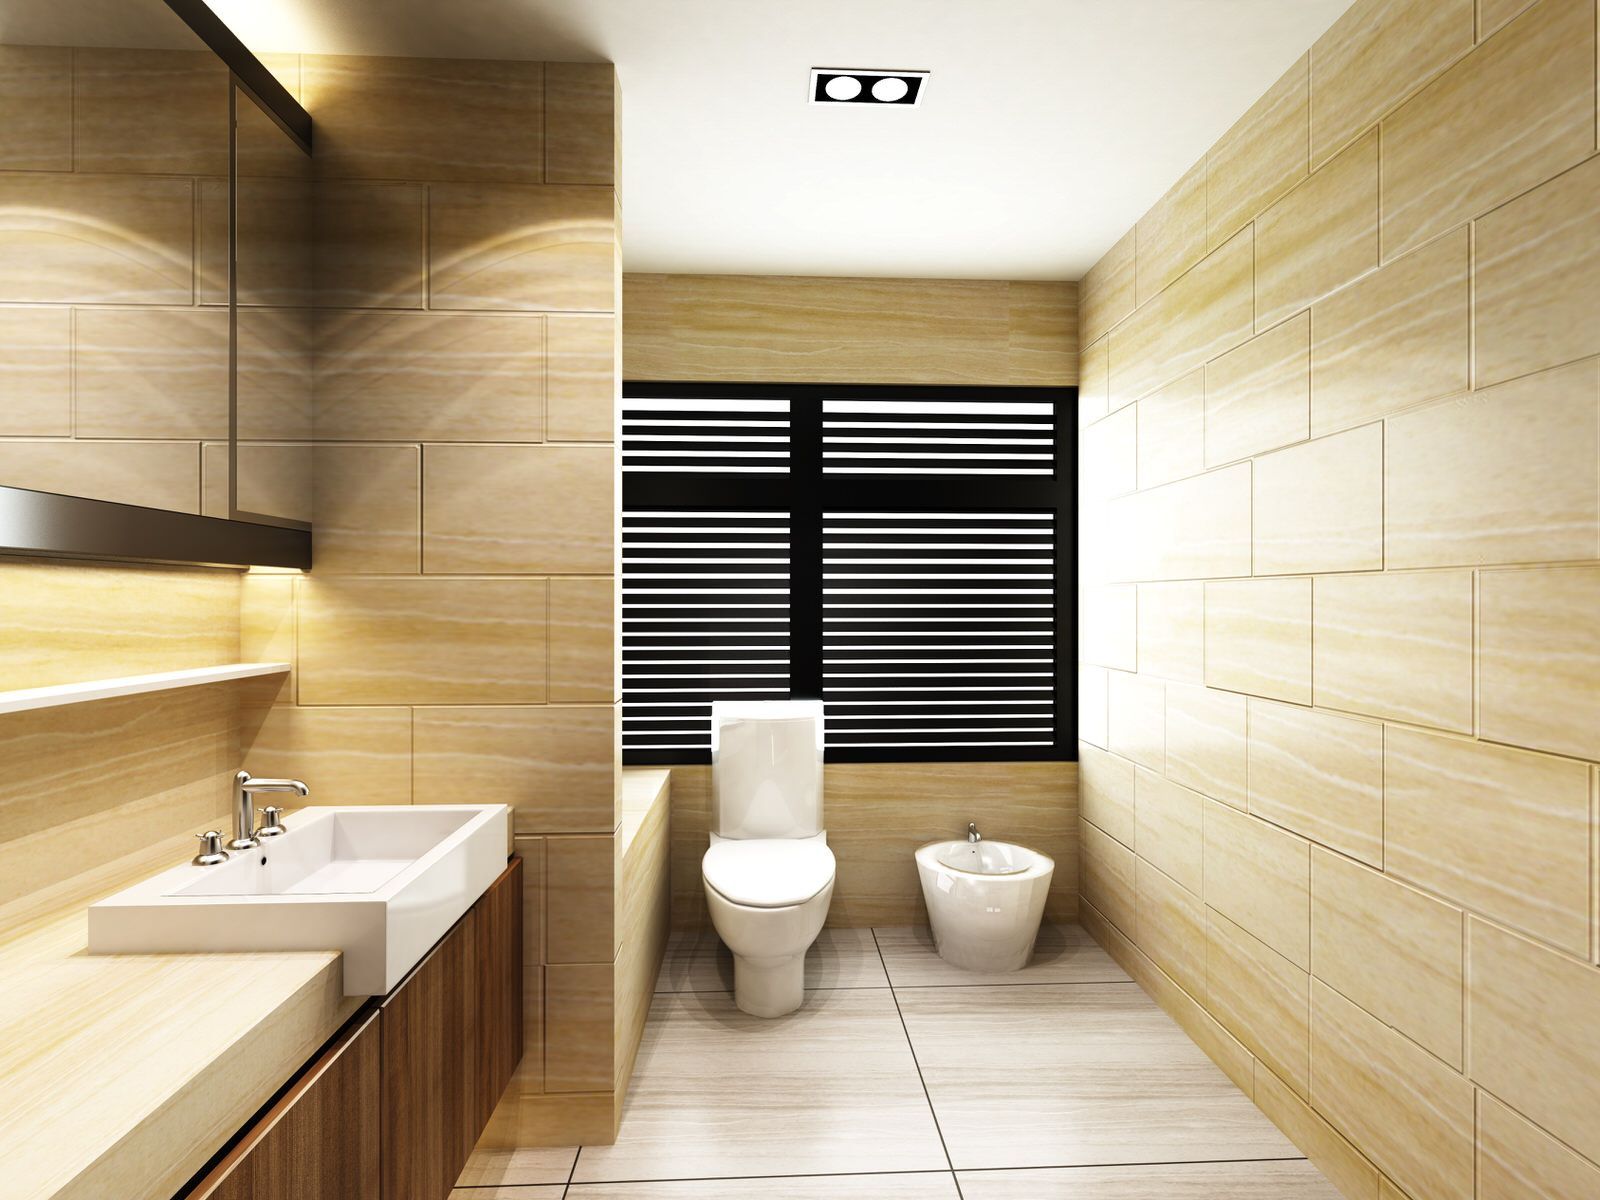 Modern Toilet in Bathroom of residences or hotels